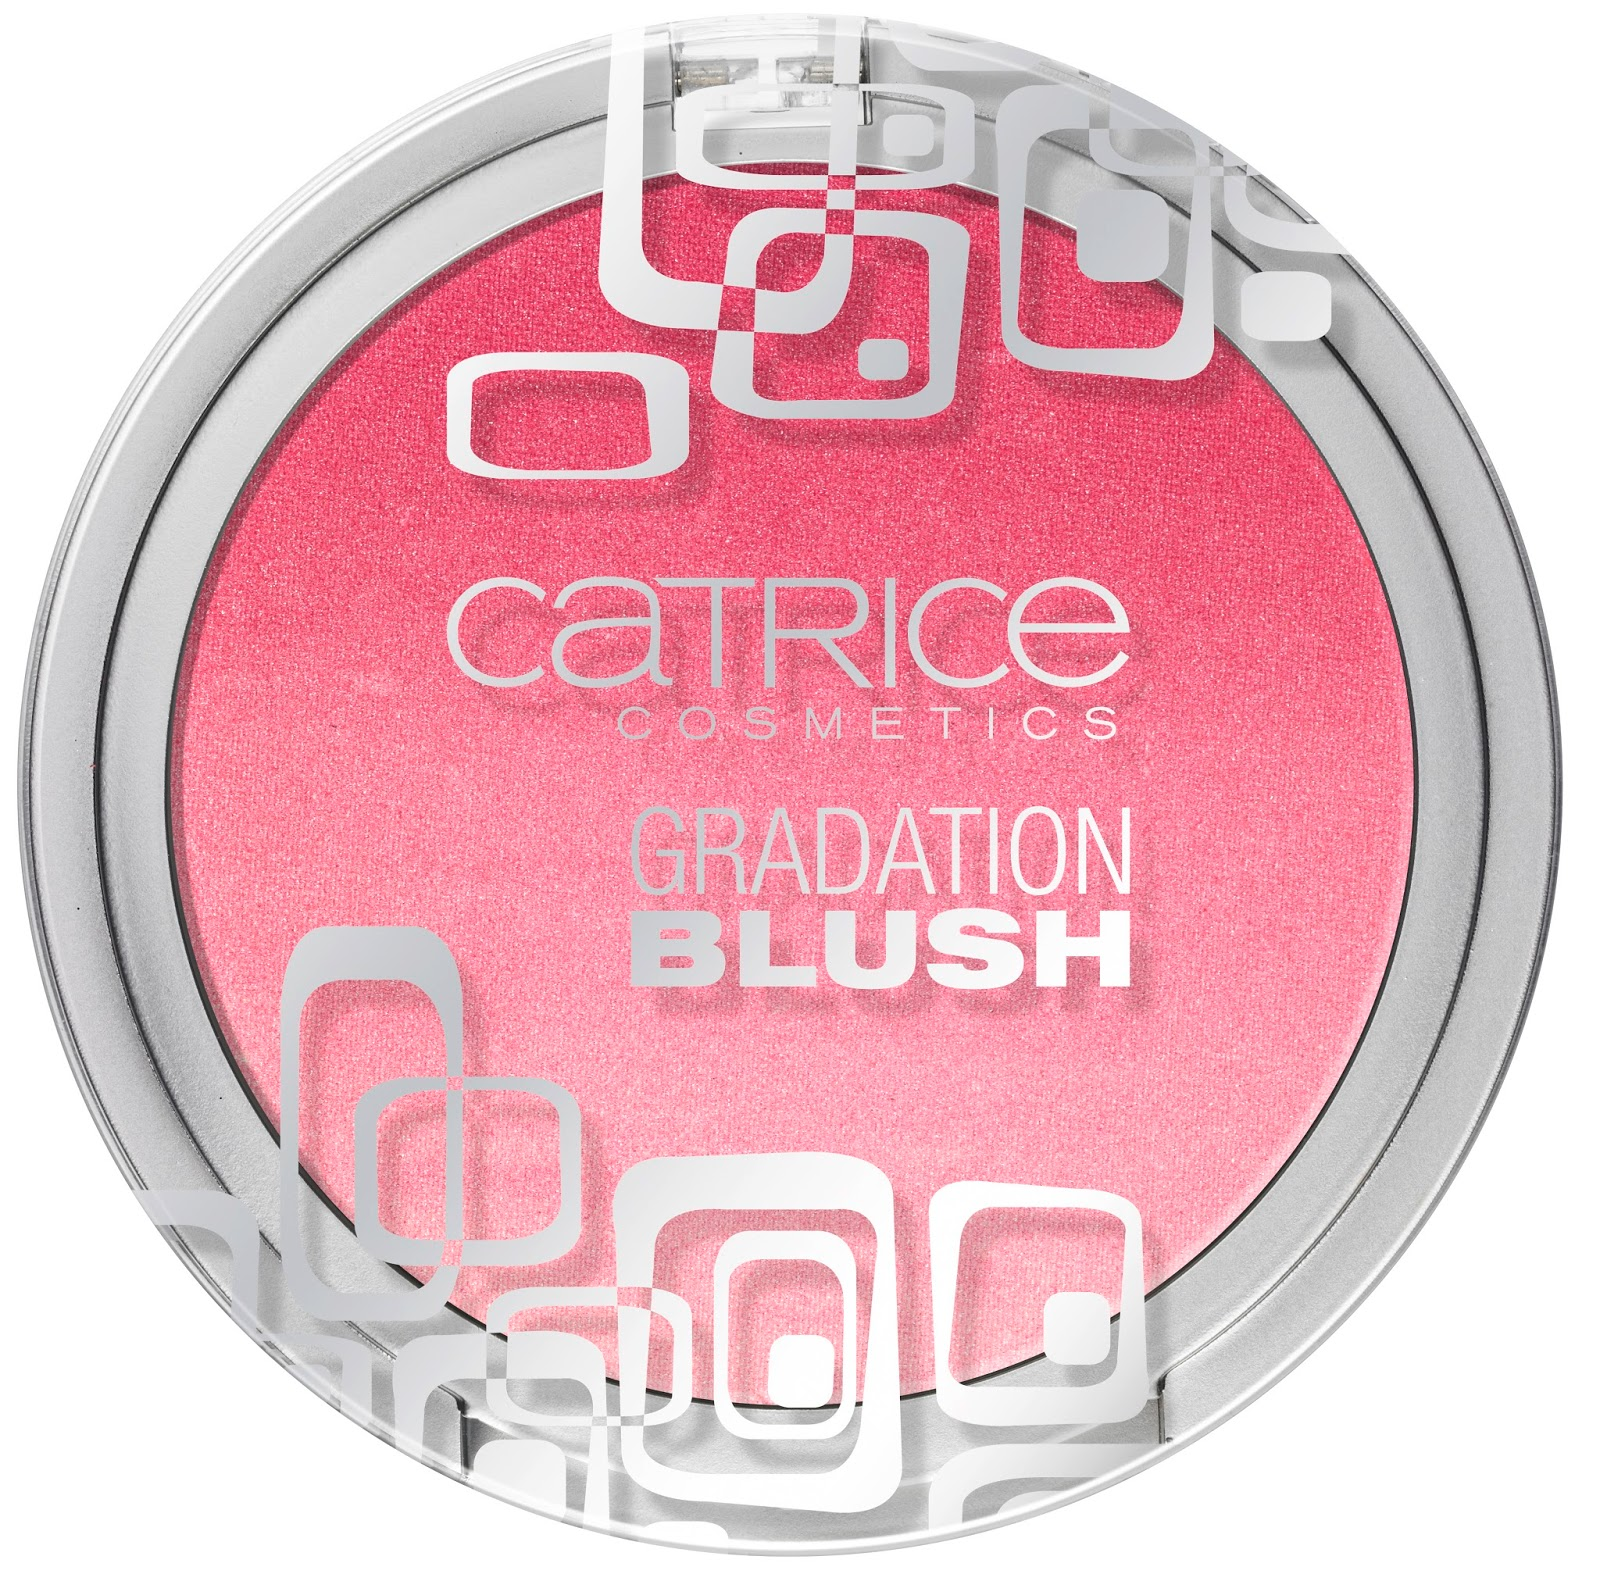 Crème Fresh by CATRICE – Gradation Blush